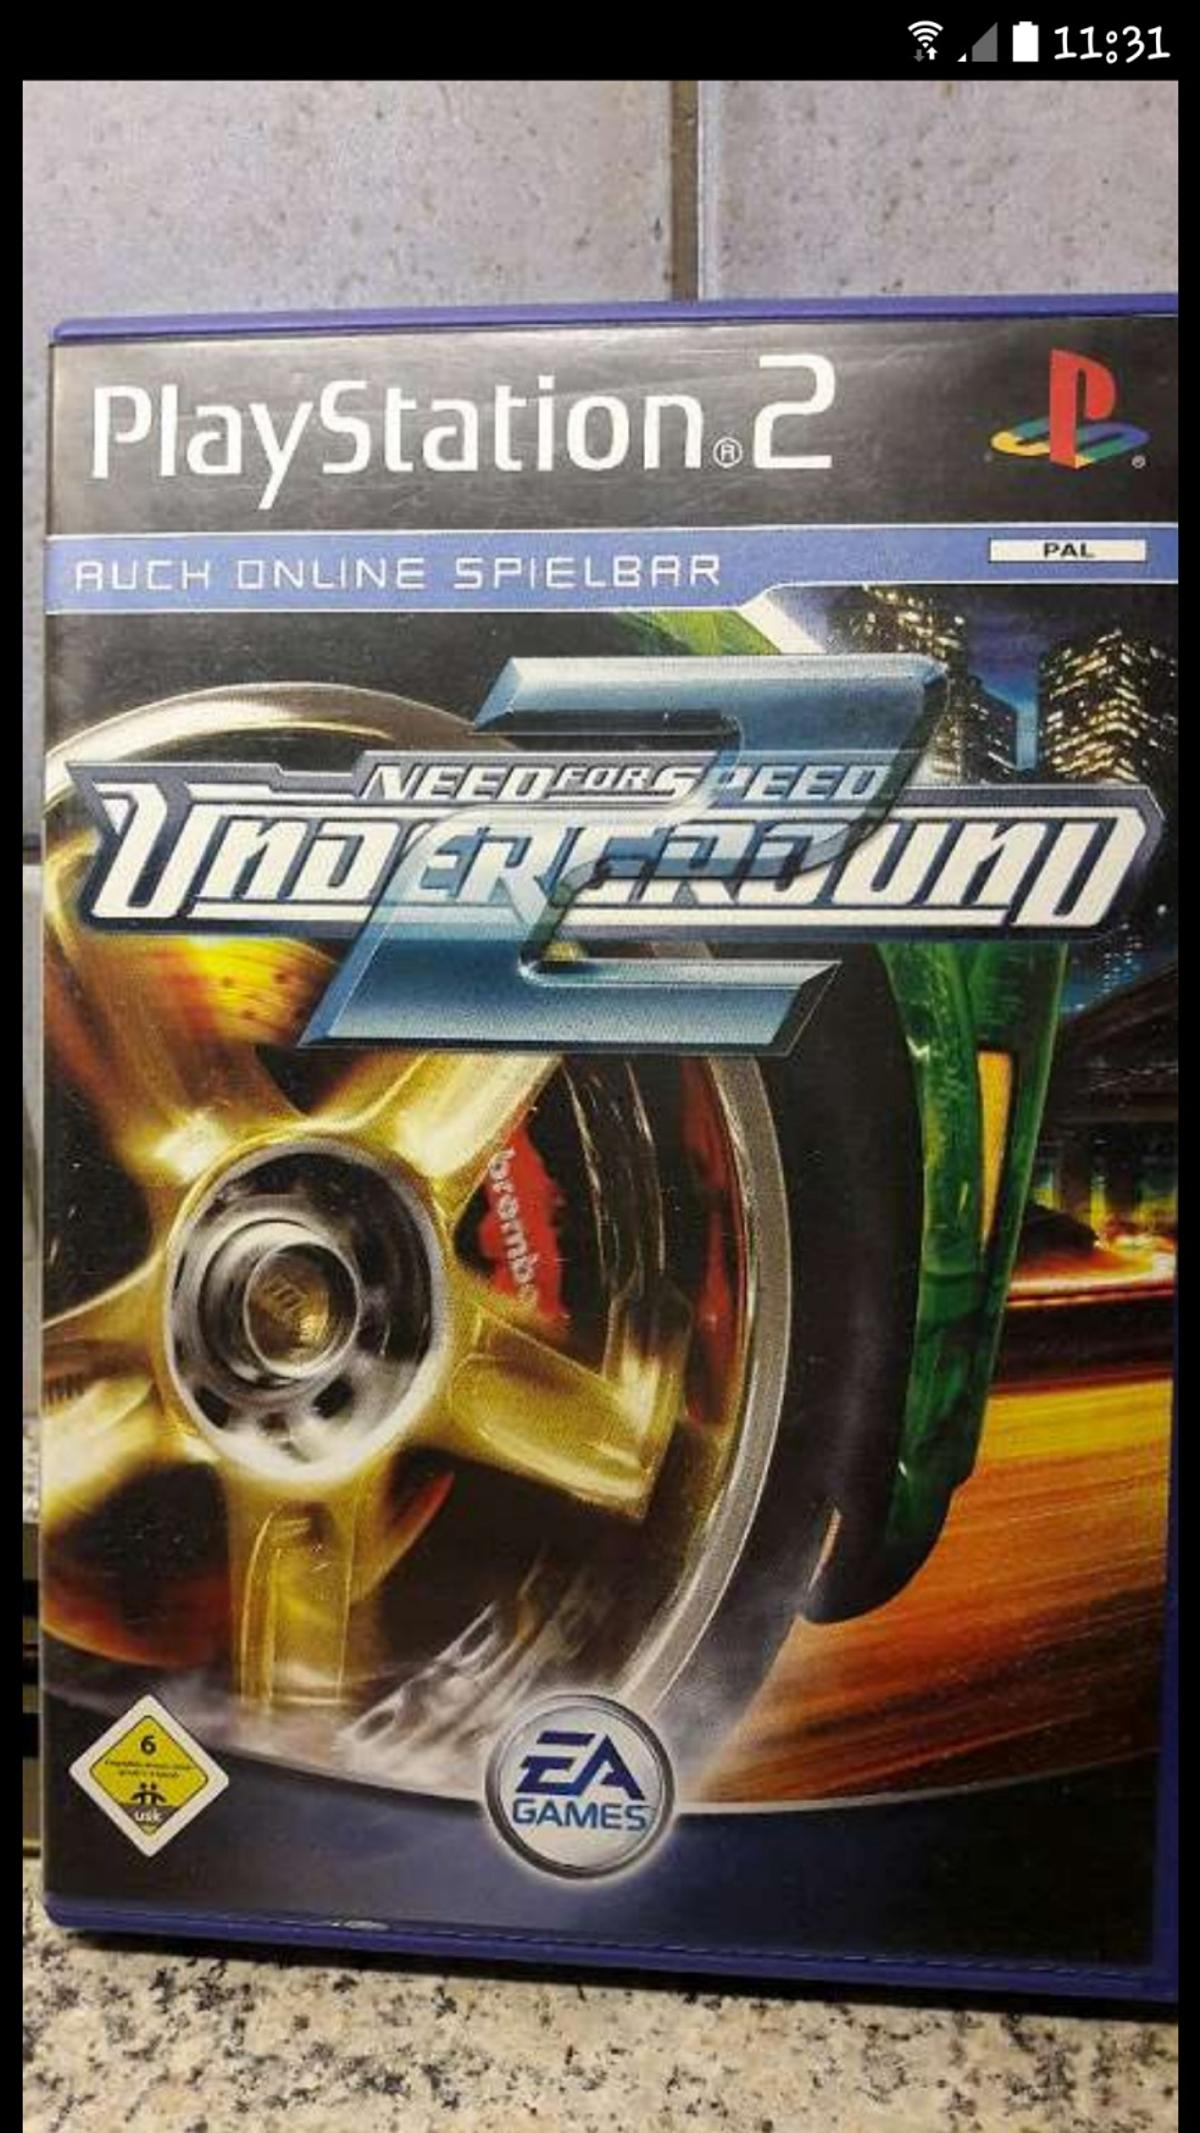 4b7d57e34 Need for Speed Underground 2 Für Playstation2 in 4600 Wels für 7,00 ...